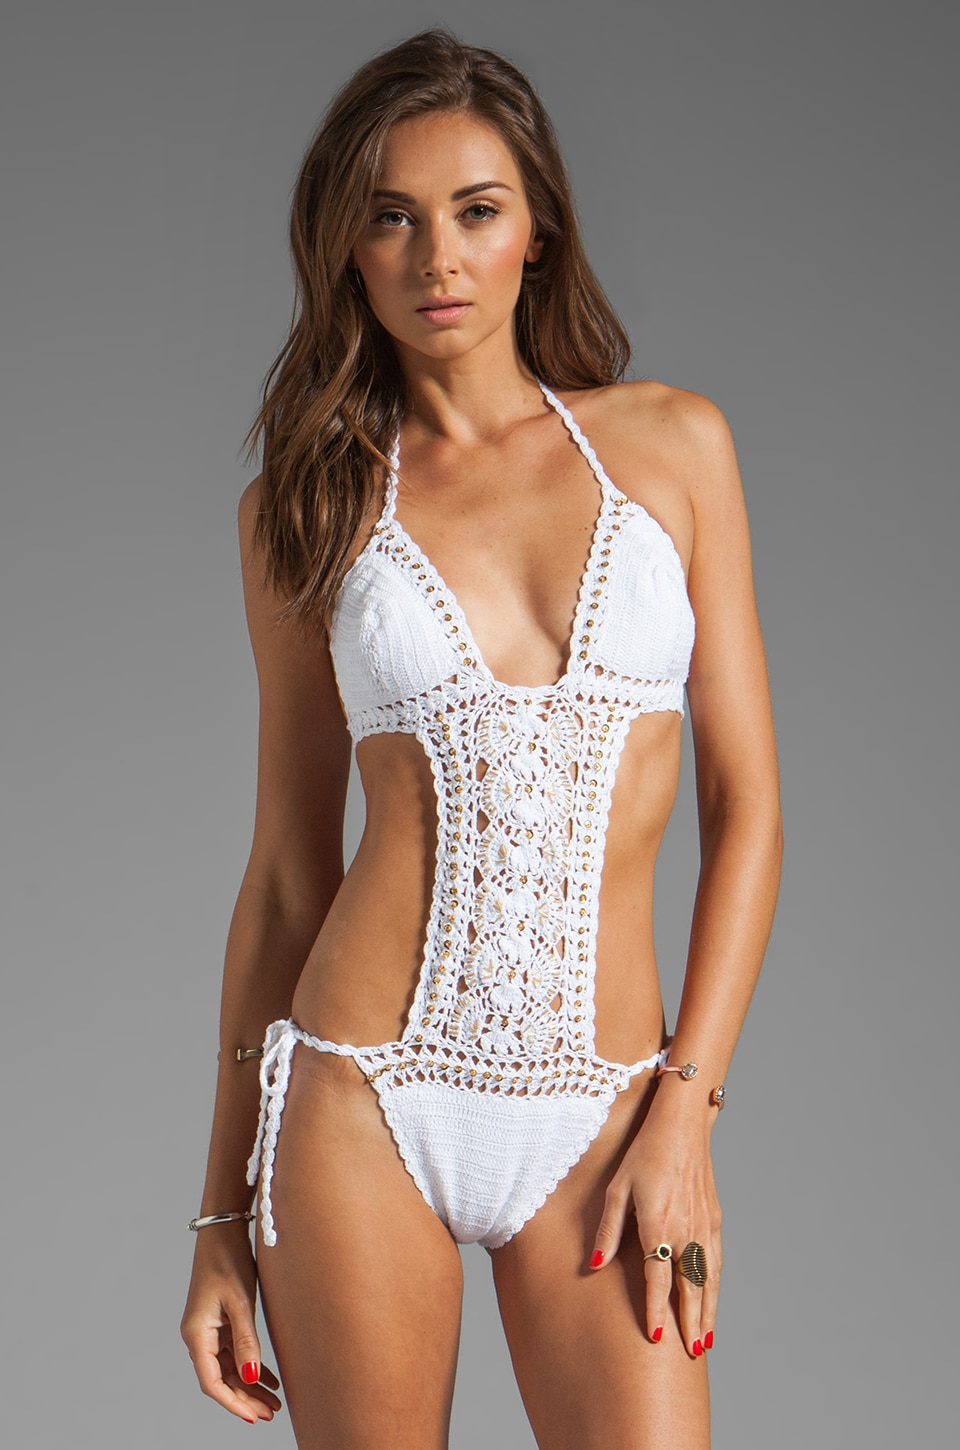 Anna Kosturova Filigree Maillot in White